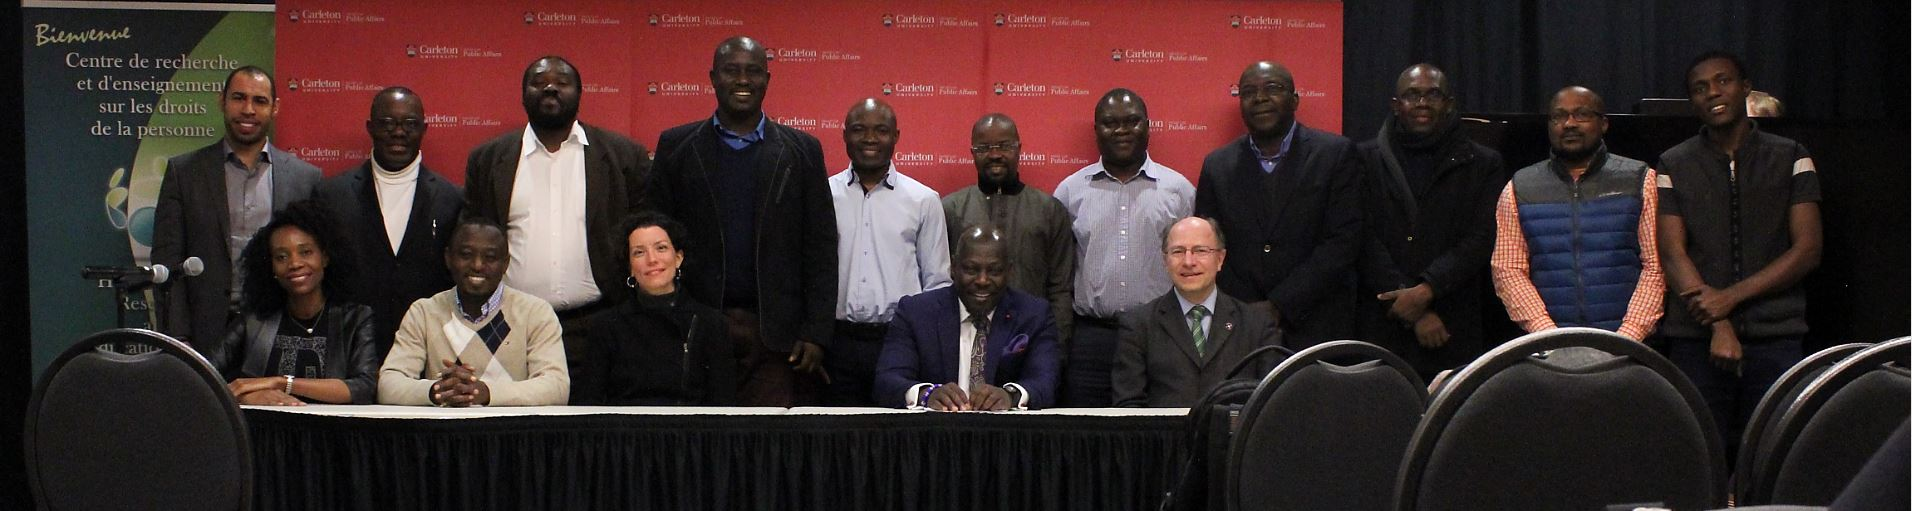 Conference Human Rights and the Public Sphere in Africa - March 2016